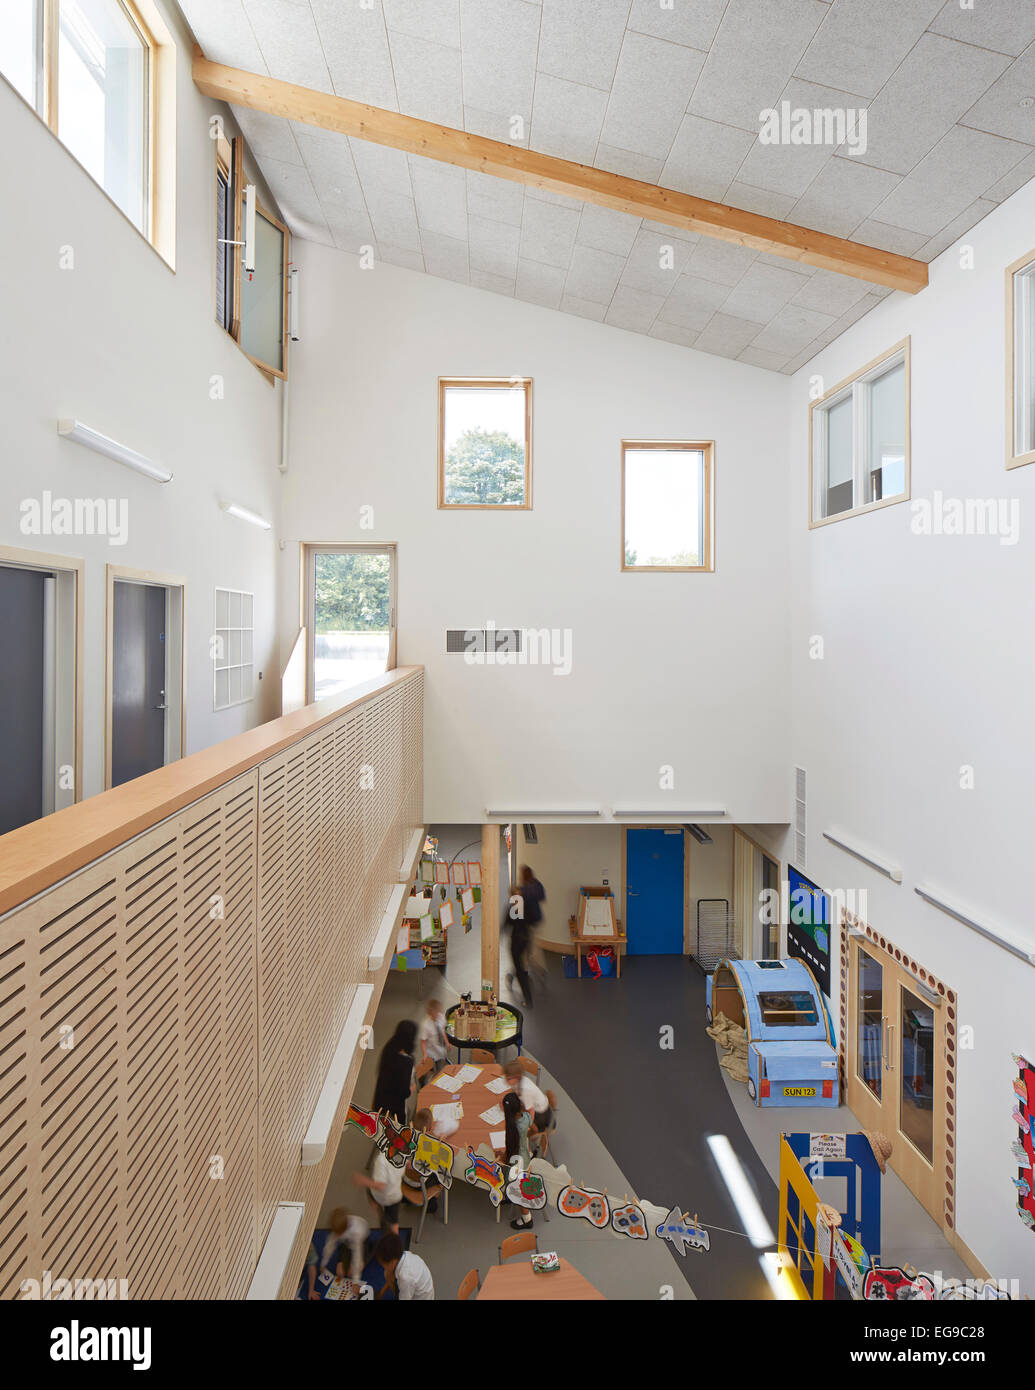 Wilkinson Primary School Wolverhampton United Kingdom Architect Architype Limited 2014 View Of First And Ground Floor With